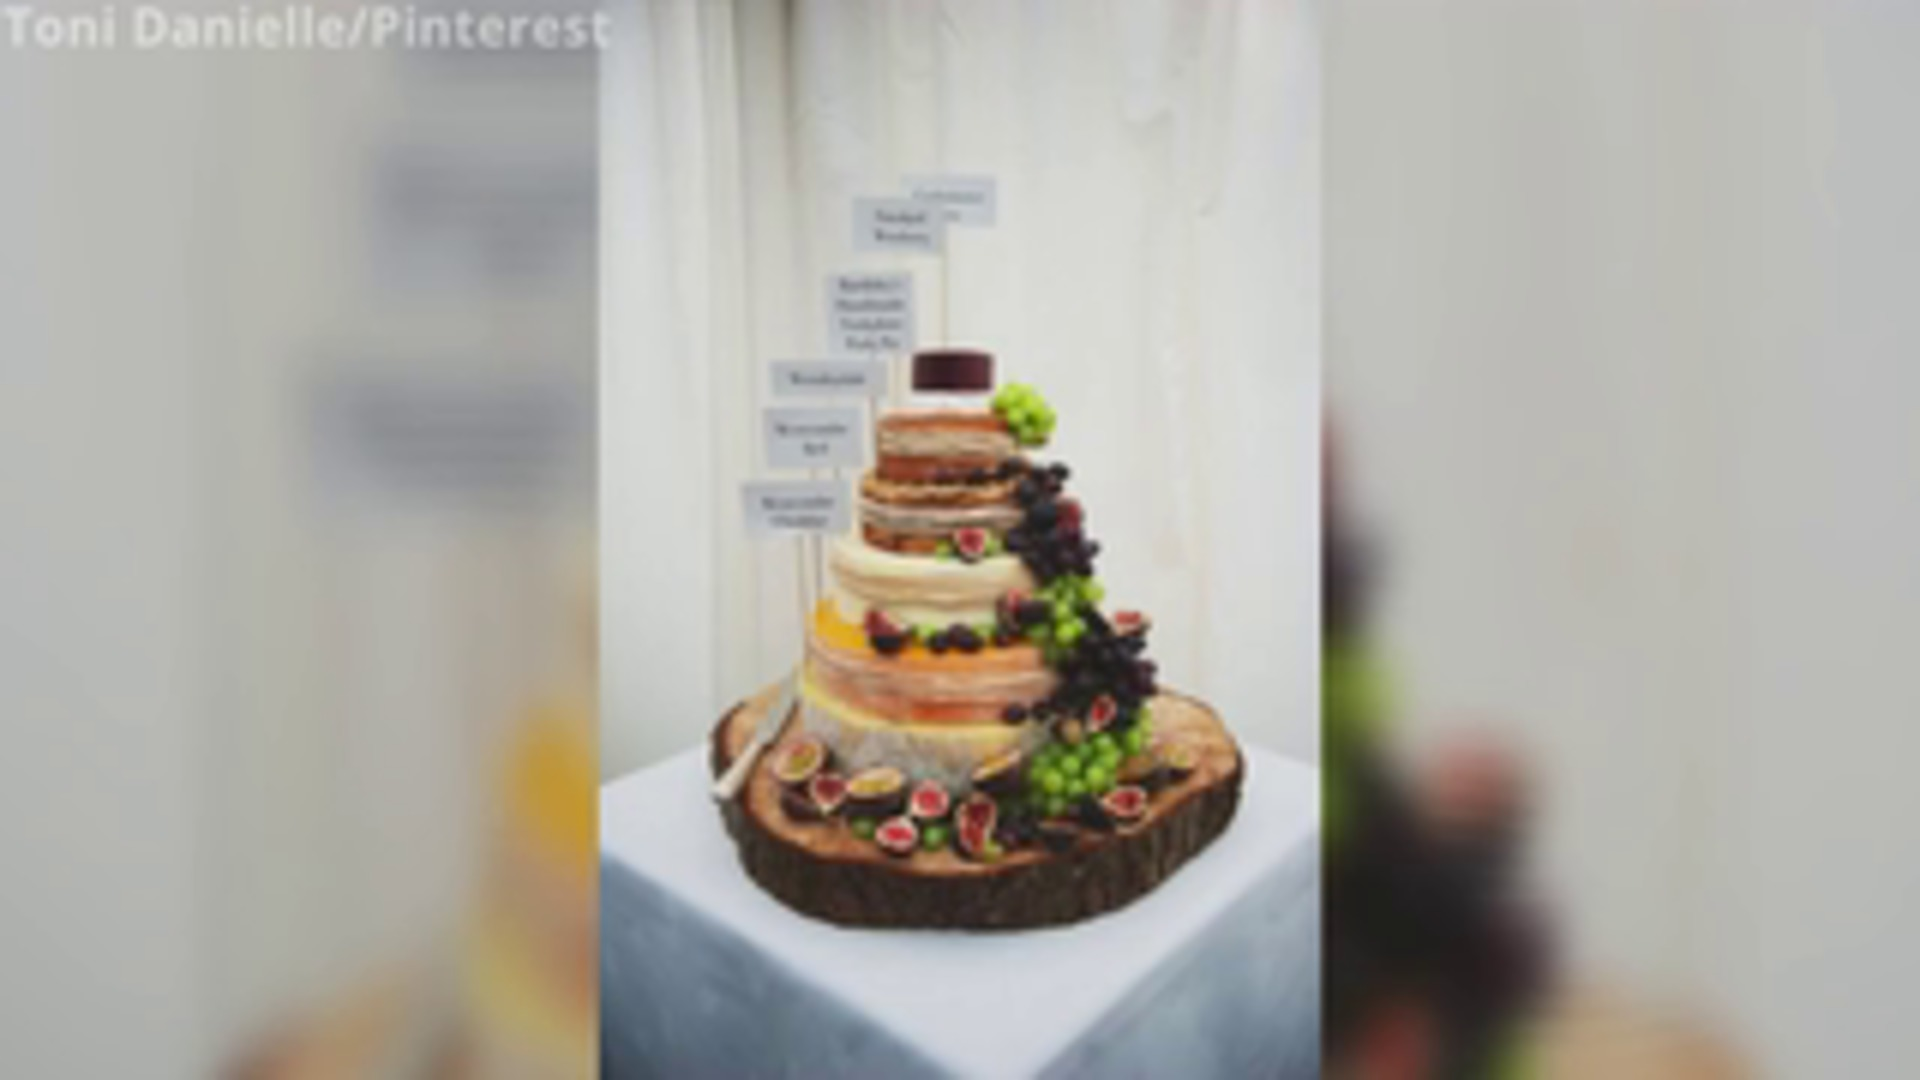 Meghan Markle and Prince Harry received a five-tier *cheese* wedding cake, and it is so Pinterest-worthy